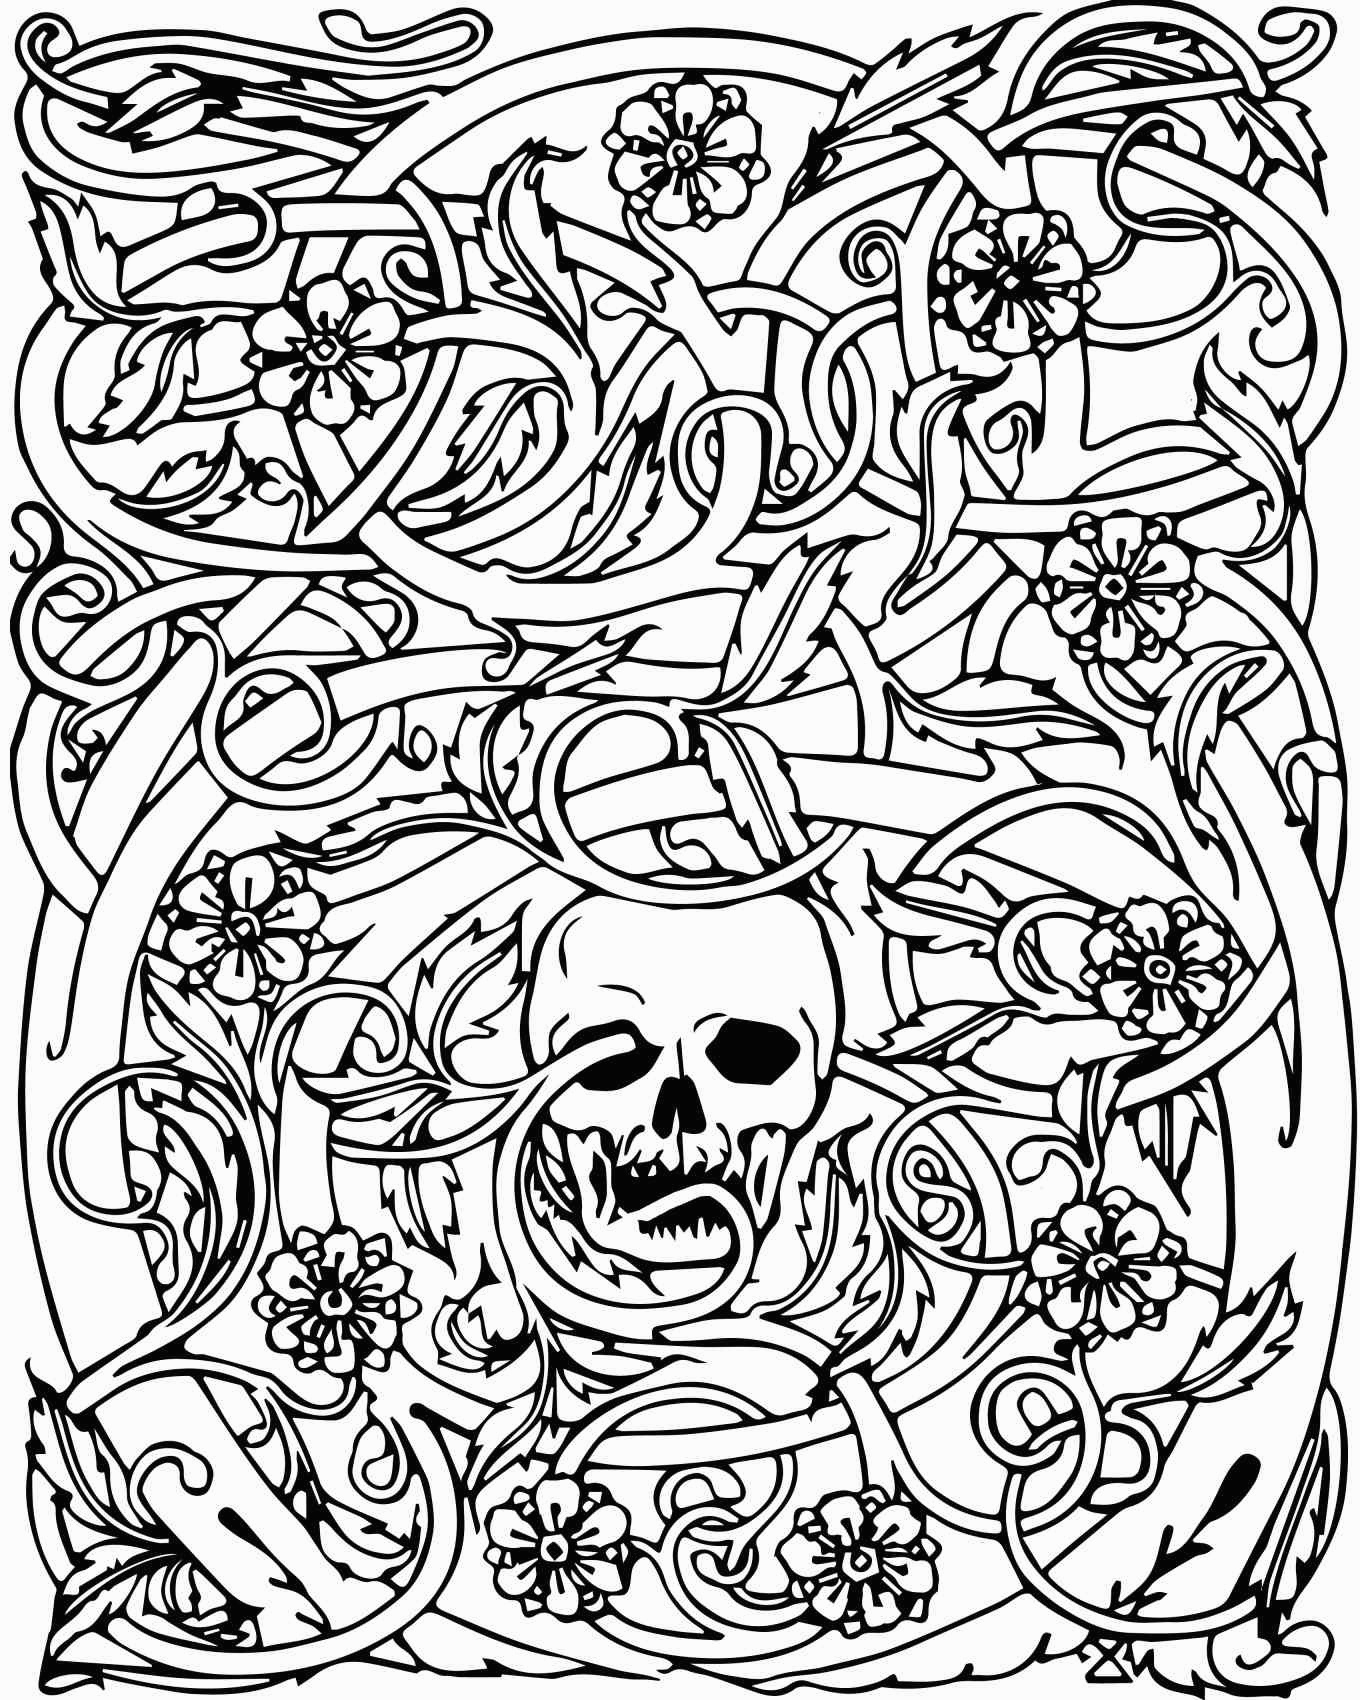 Skull Color Pages Free Printable Skull Coloring Pages For Kids